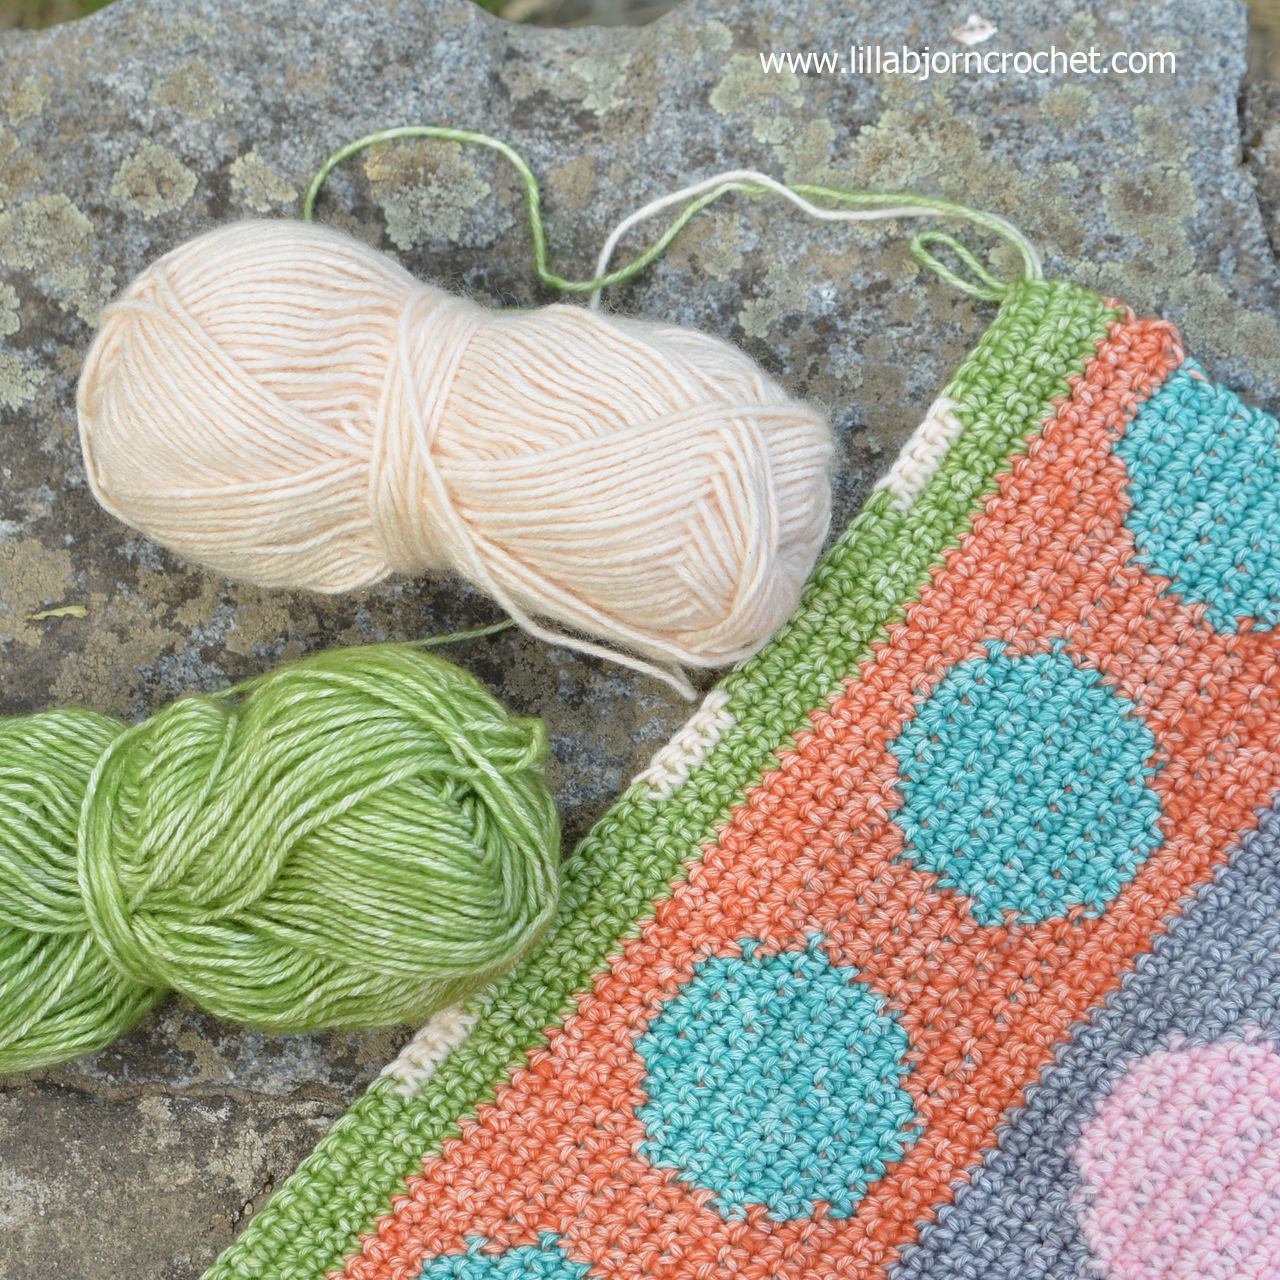 Pillow cover in tapestry crochet with circles pattern - by Lilla Bjorn Crochet